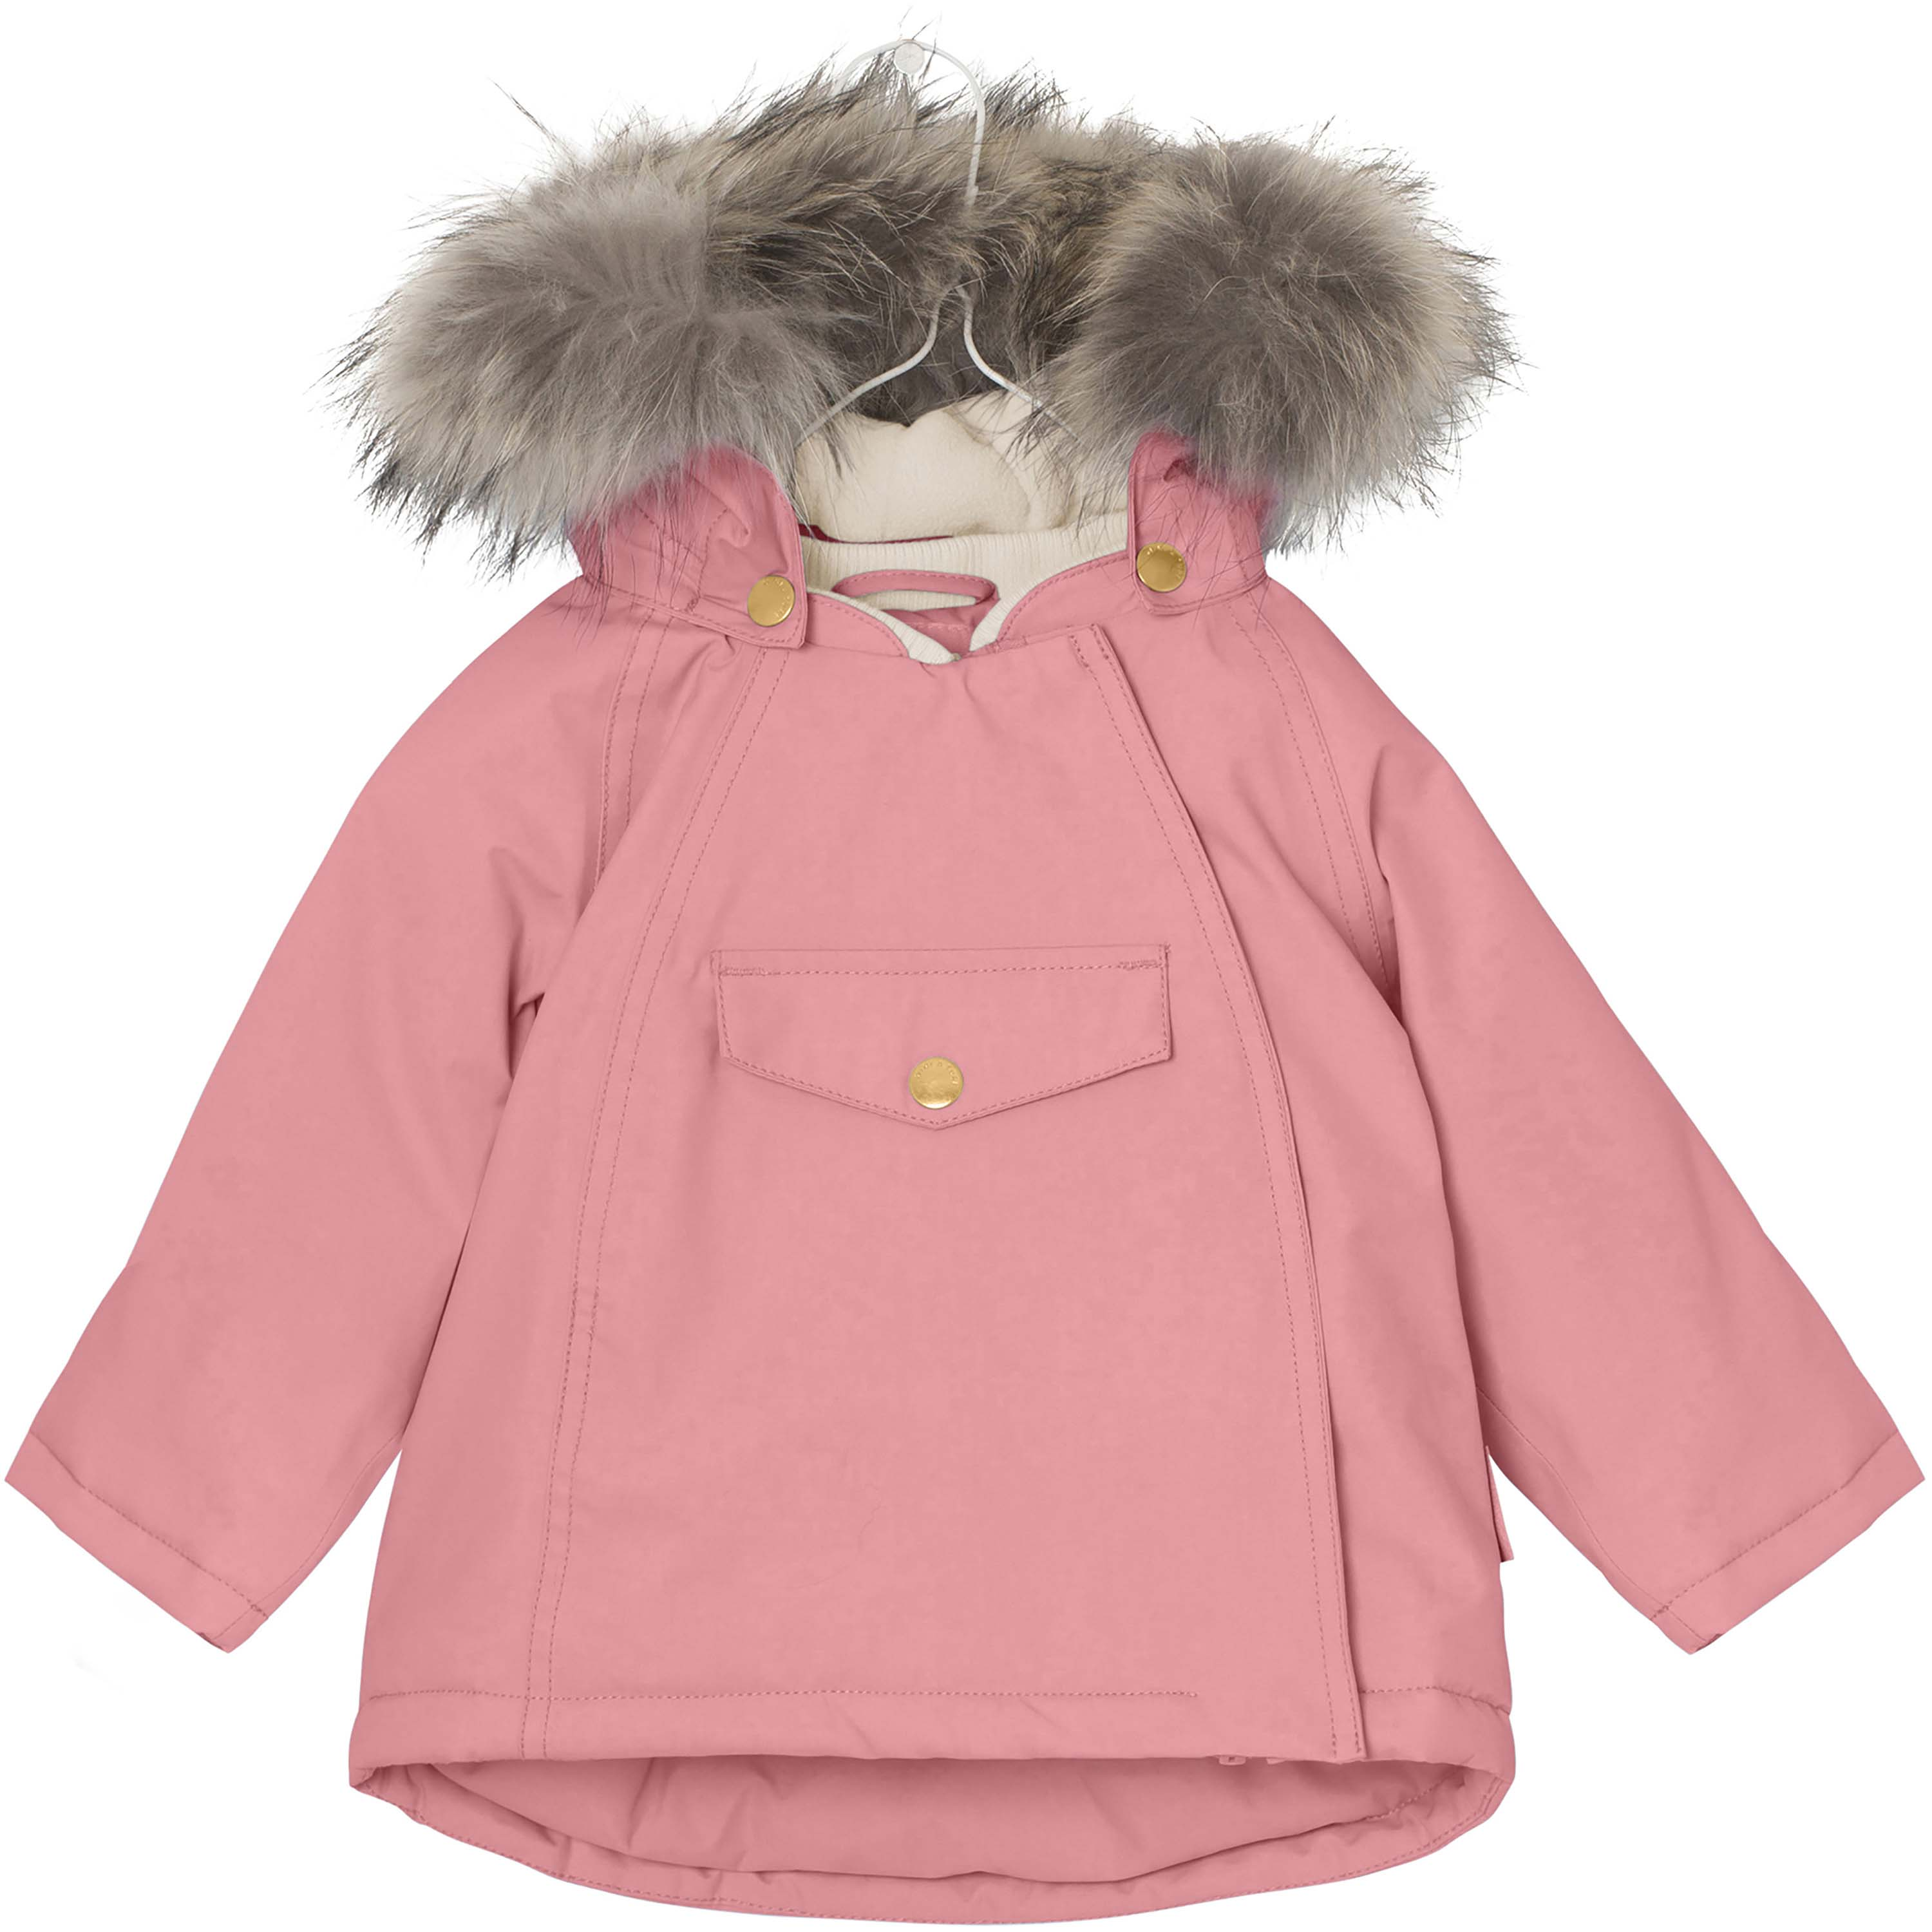 Wang Winter/Ski Jacket- Geranium Pink